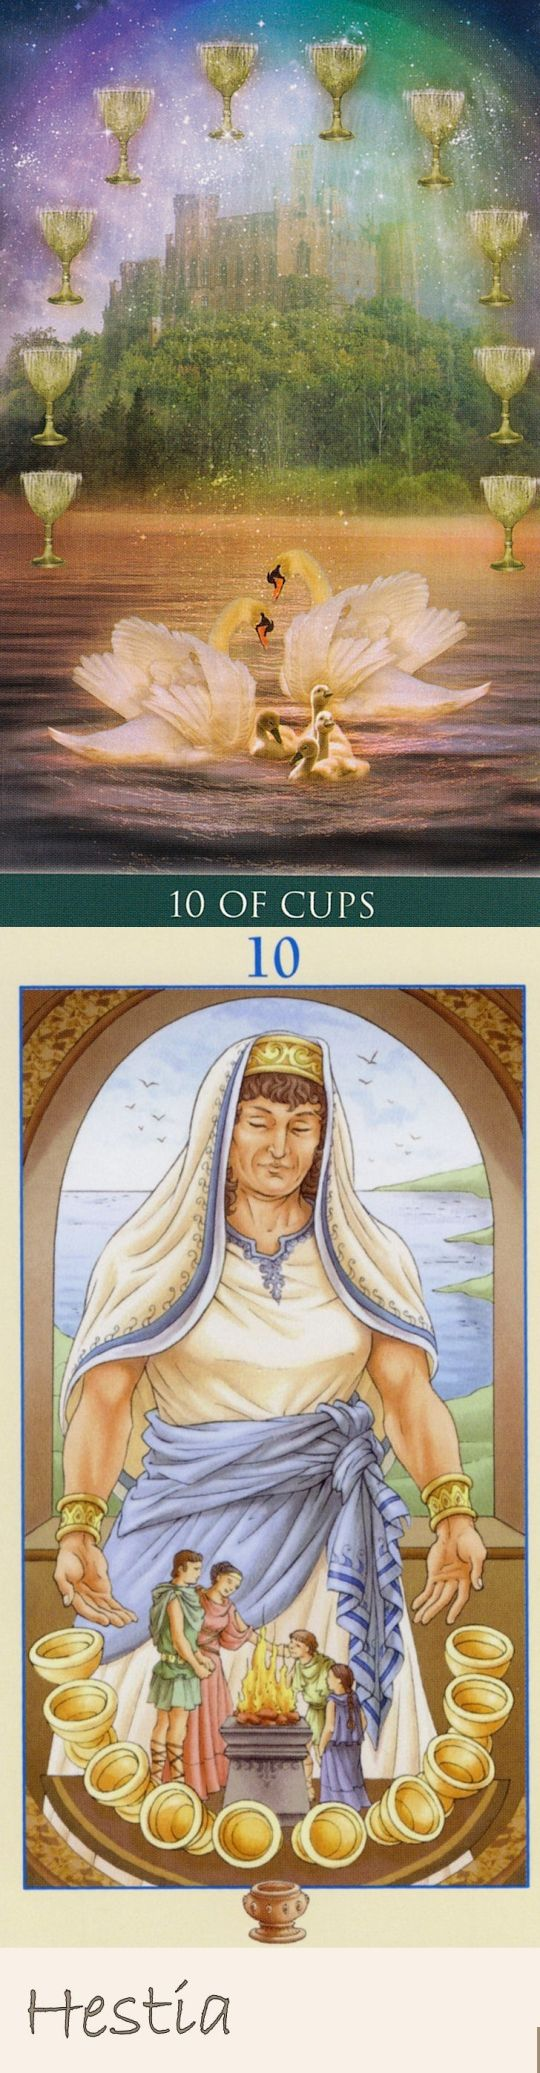 Ten of Cups: contentment and bad relationships (reverse). Thelema Tarot deck and Universal Goddess Tarot deck: tarot holder, tarot deck cards vs tarot handbook angeles arrien. Best 2017 witches and halloween costumes. #thestar #ritual #spells #death #halloweencostume #tarotchart